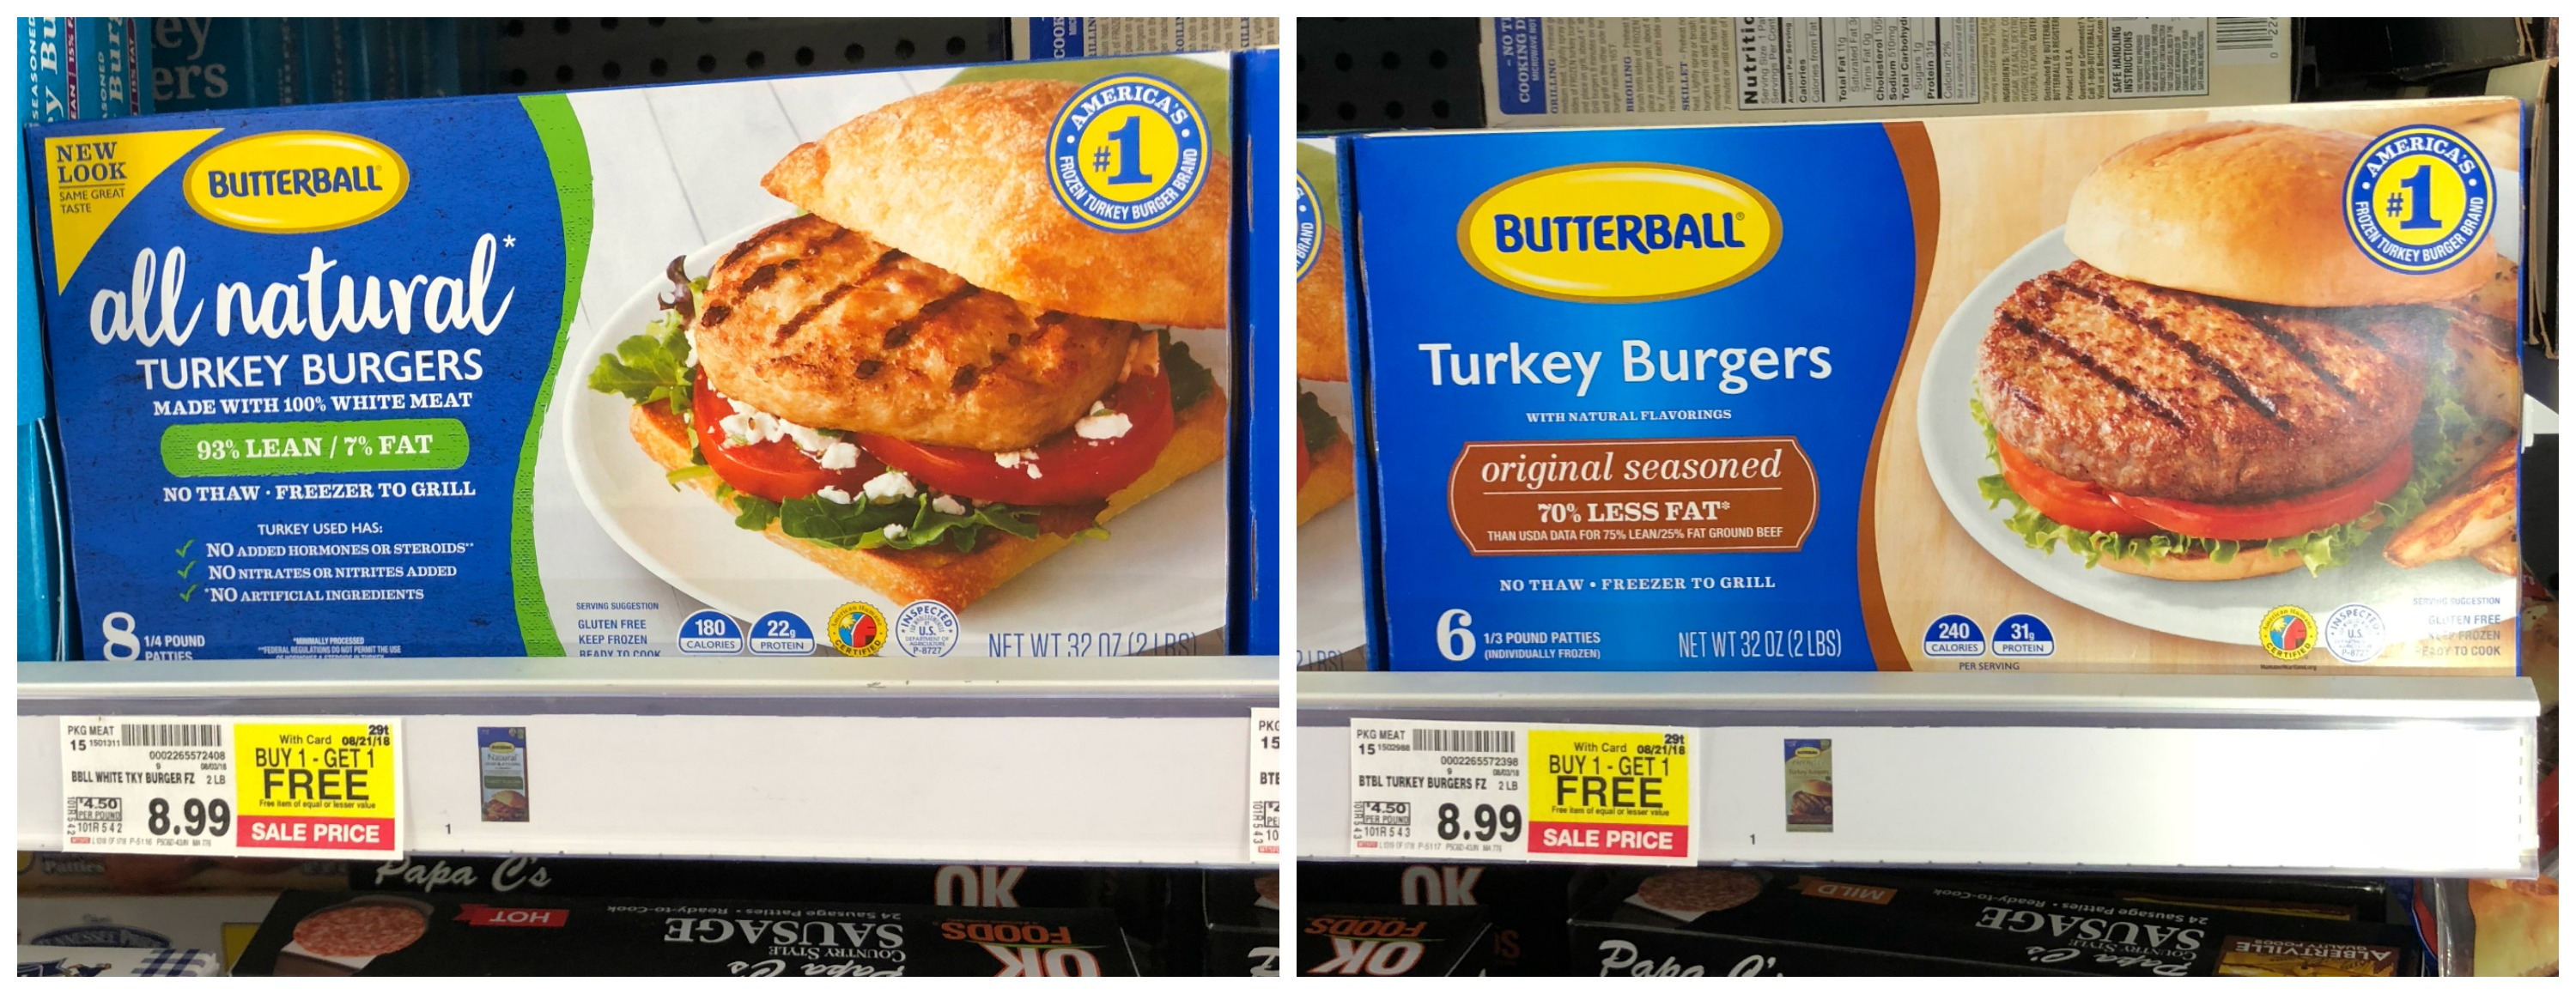 Combine printable Butterball coupons with store sales to save up to 50% on Butterball products. Stock up on turkey bacon for $ or ground turkey for $ when you combine frequent store sales with coupons at Walgreens.